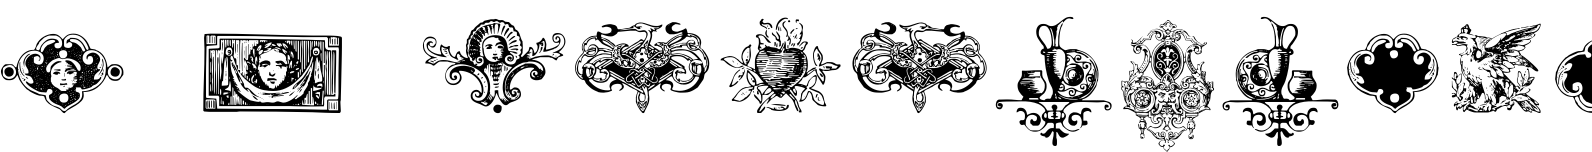 Renaissance Ornaments